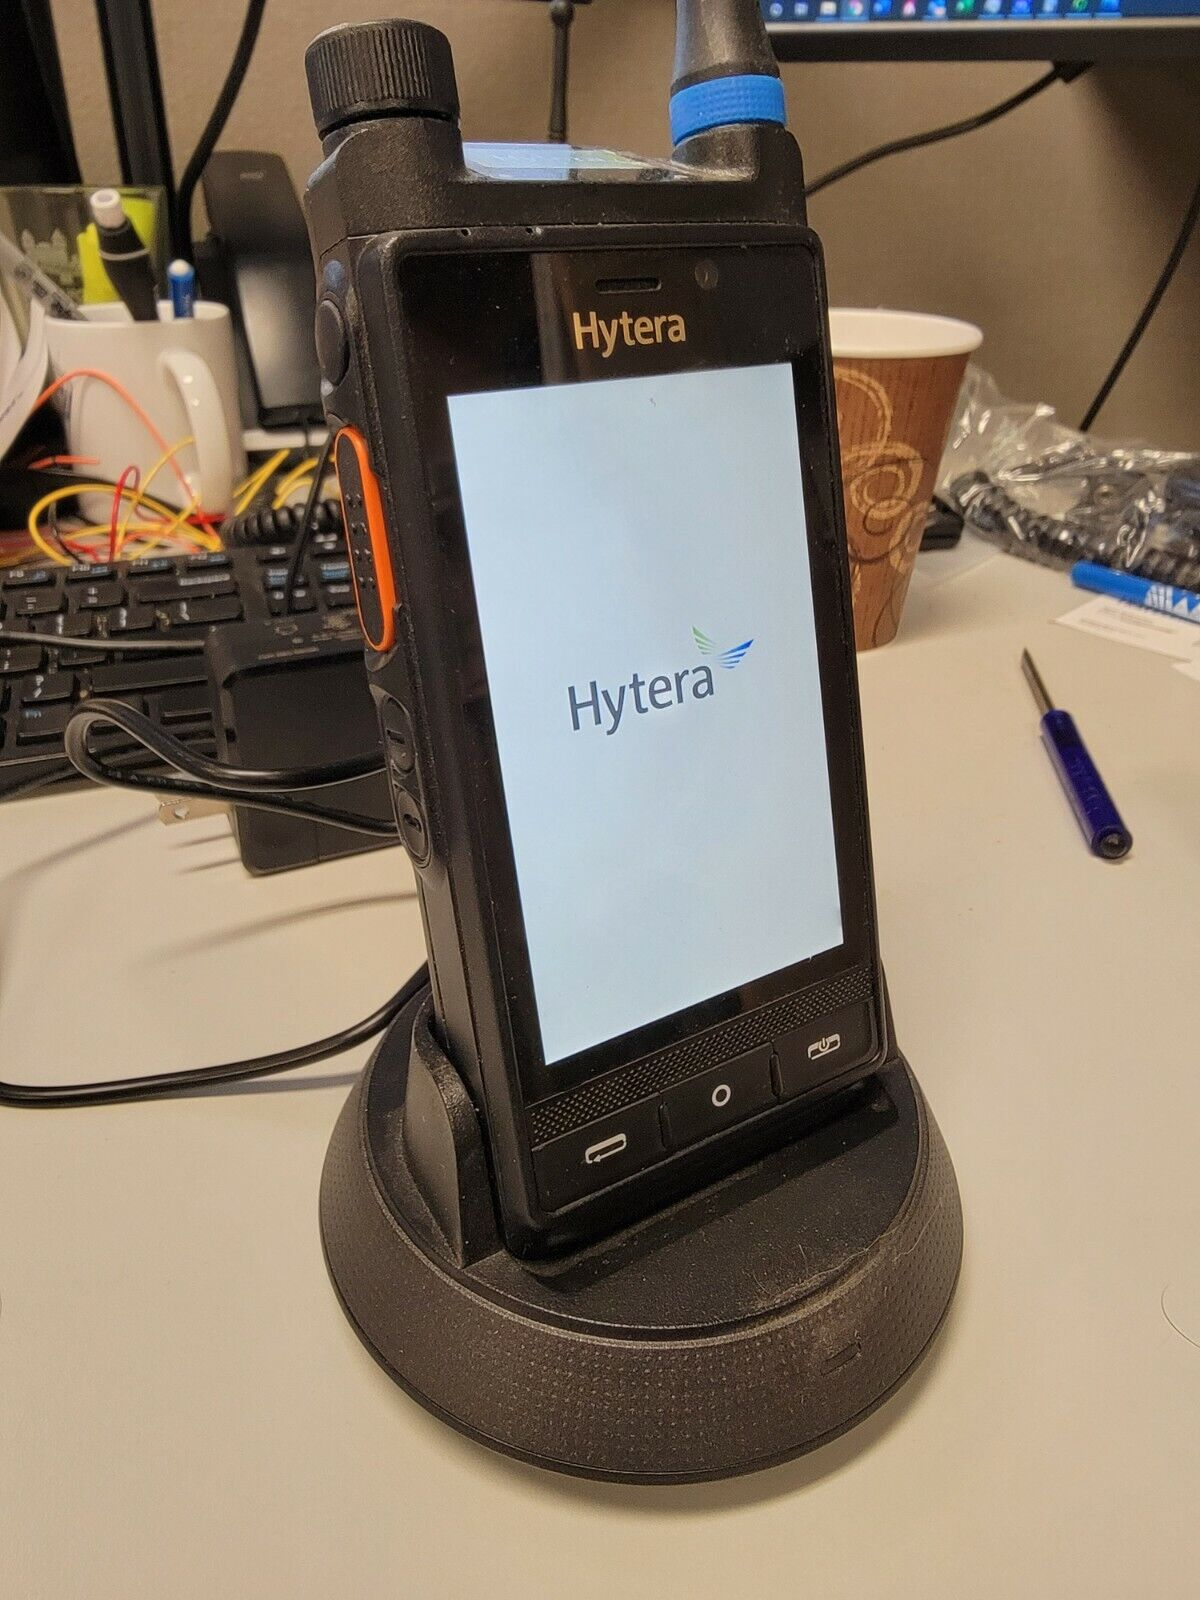 Hytera PDC760 Android Portable Radio (400-470MHz) US Version LTE/Analog/DMR. Buy it now for 799.00